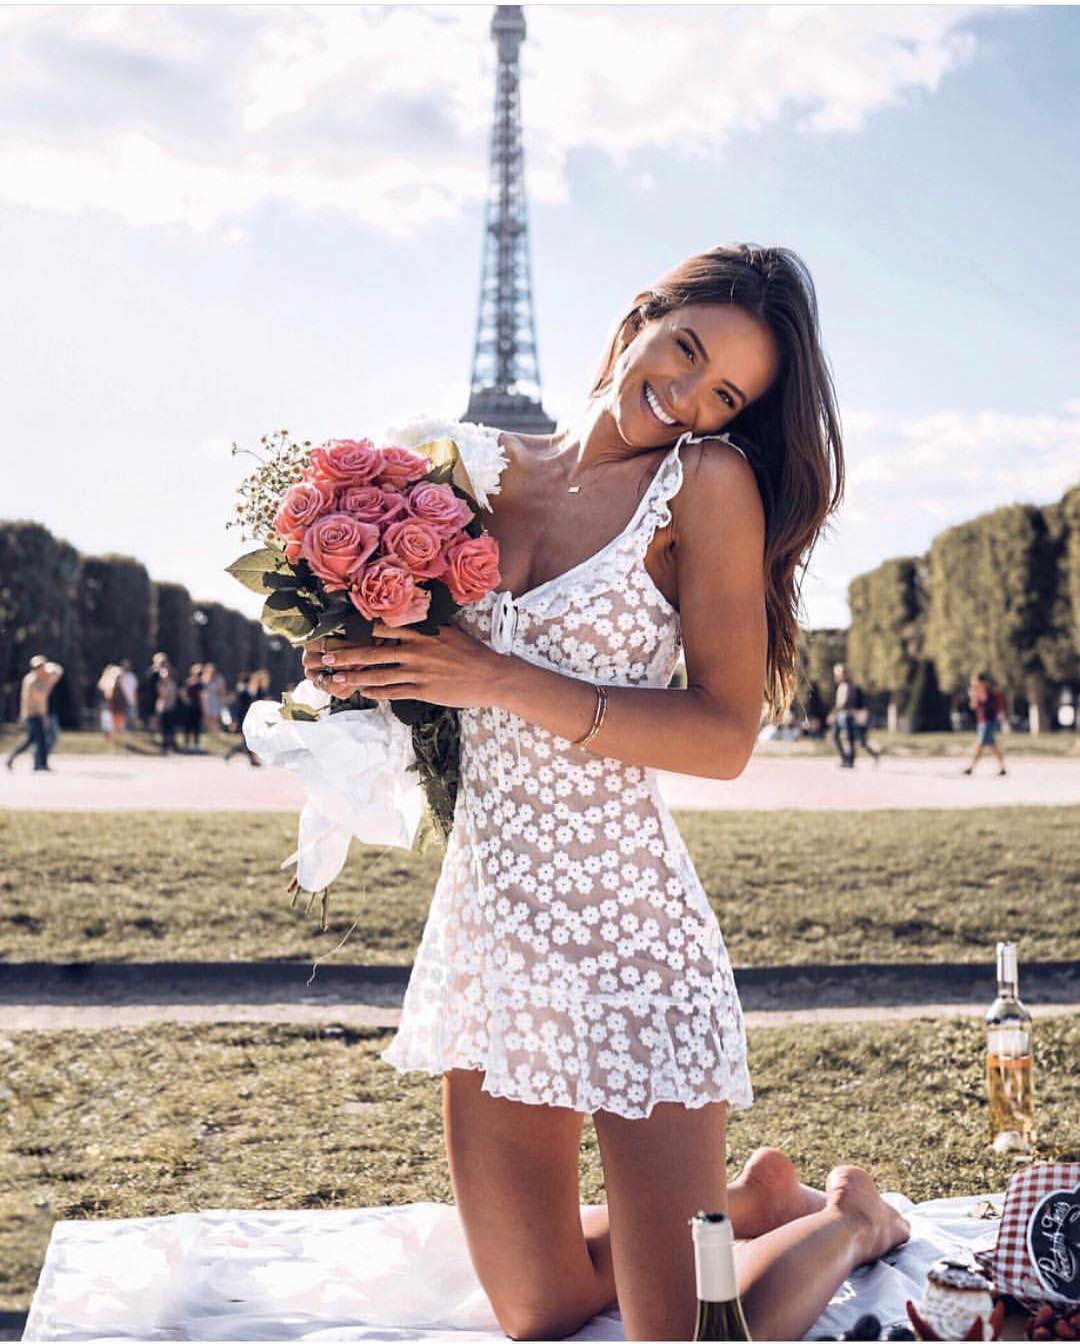 White Semi-Sheer Dress In Floral Lace For Parisian Chic Ladies 2020